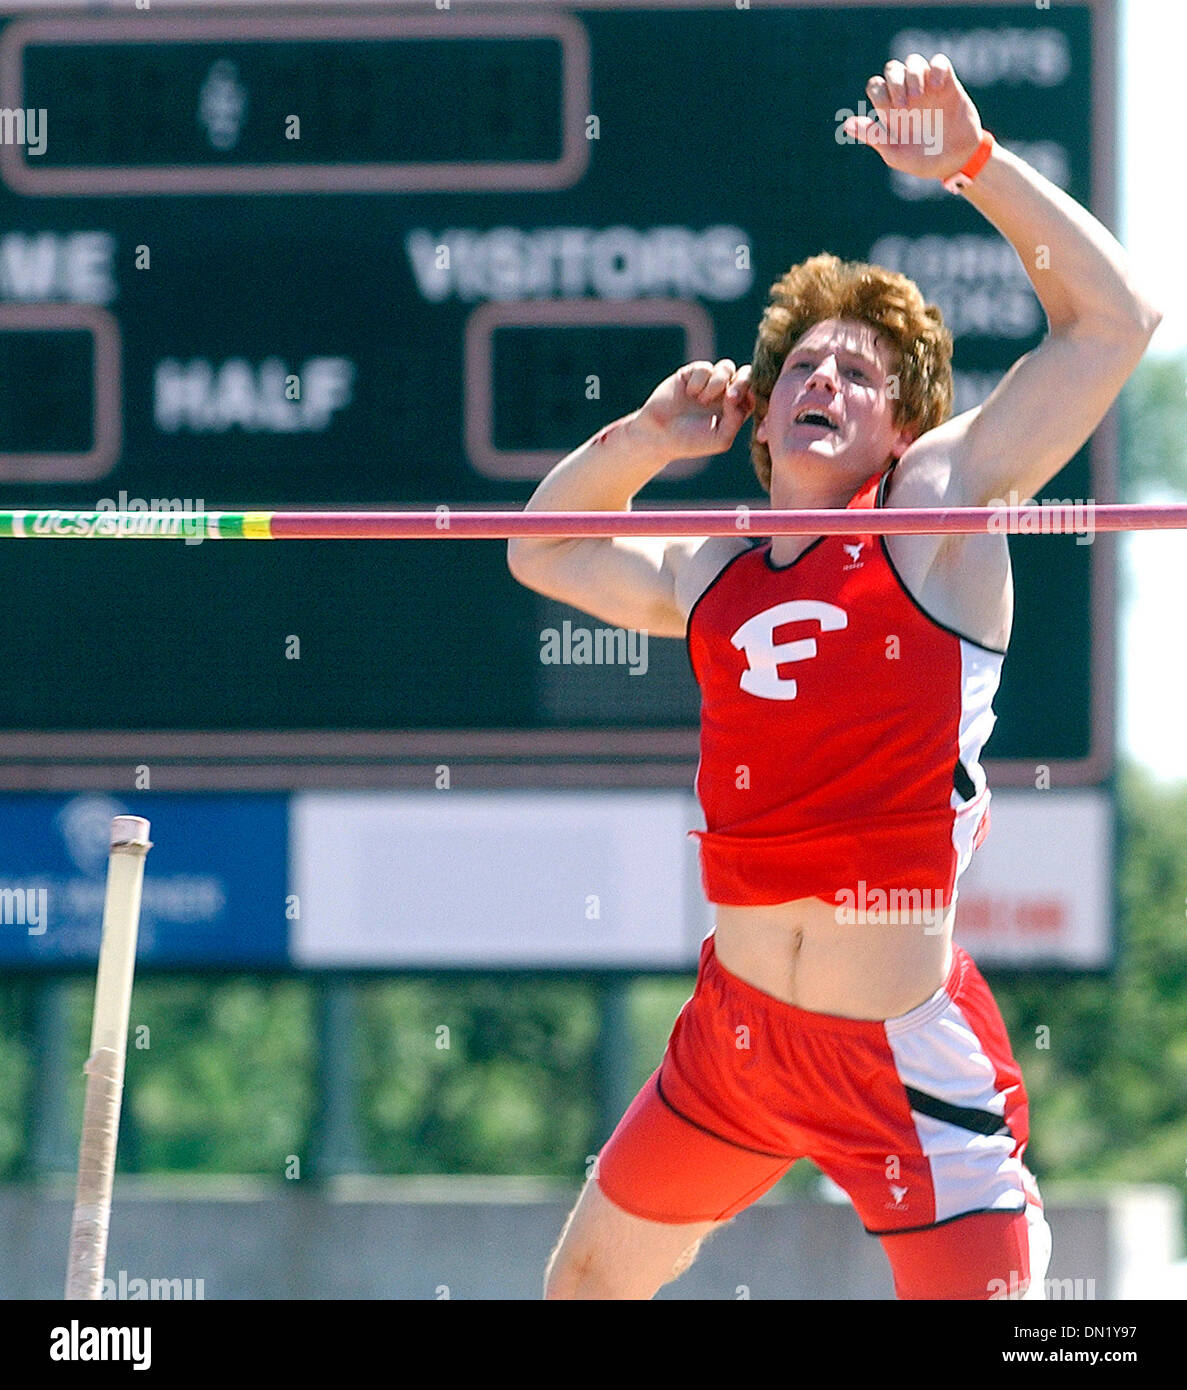 Apr 07, 2006; Austin, TX, USA; ATHLETICS: Victor Weirich clears the bar for the winning vault in a jump off for the high school division of the pole vault at the Texas Relays. Mandatory Credit: Photo by T Reel/San Antonio Express-News/ZUMA Press. (©) Copyright 2006 by San Antonio Express-News - Stock Image